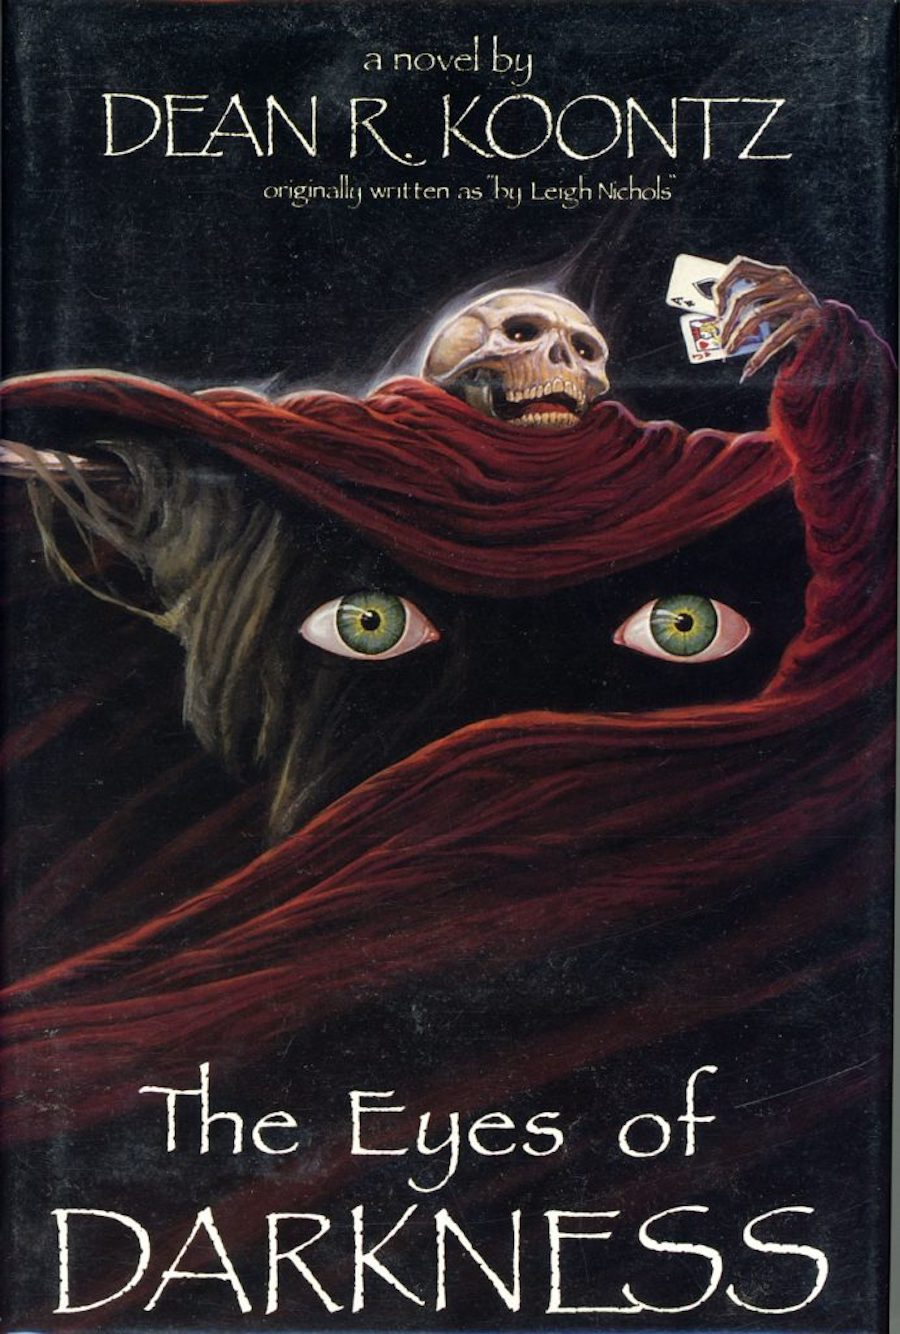 The-Eyes-of-Darkness-by-Dean-Koontz-691x1024